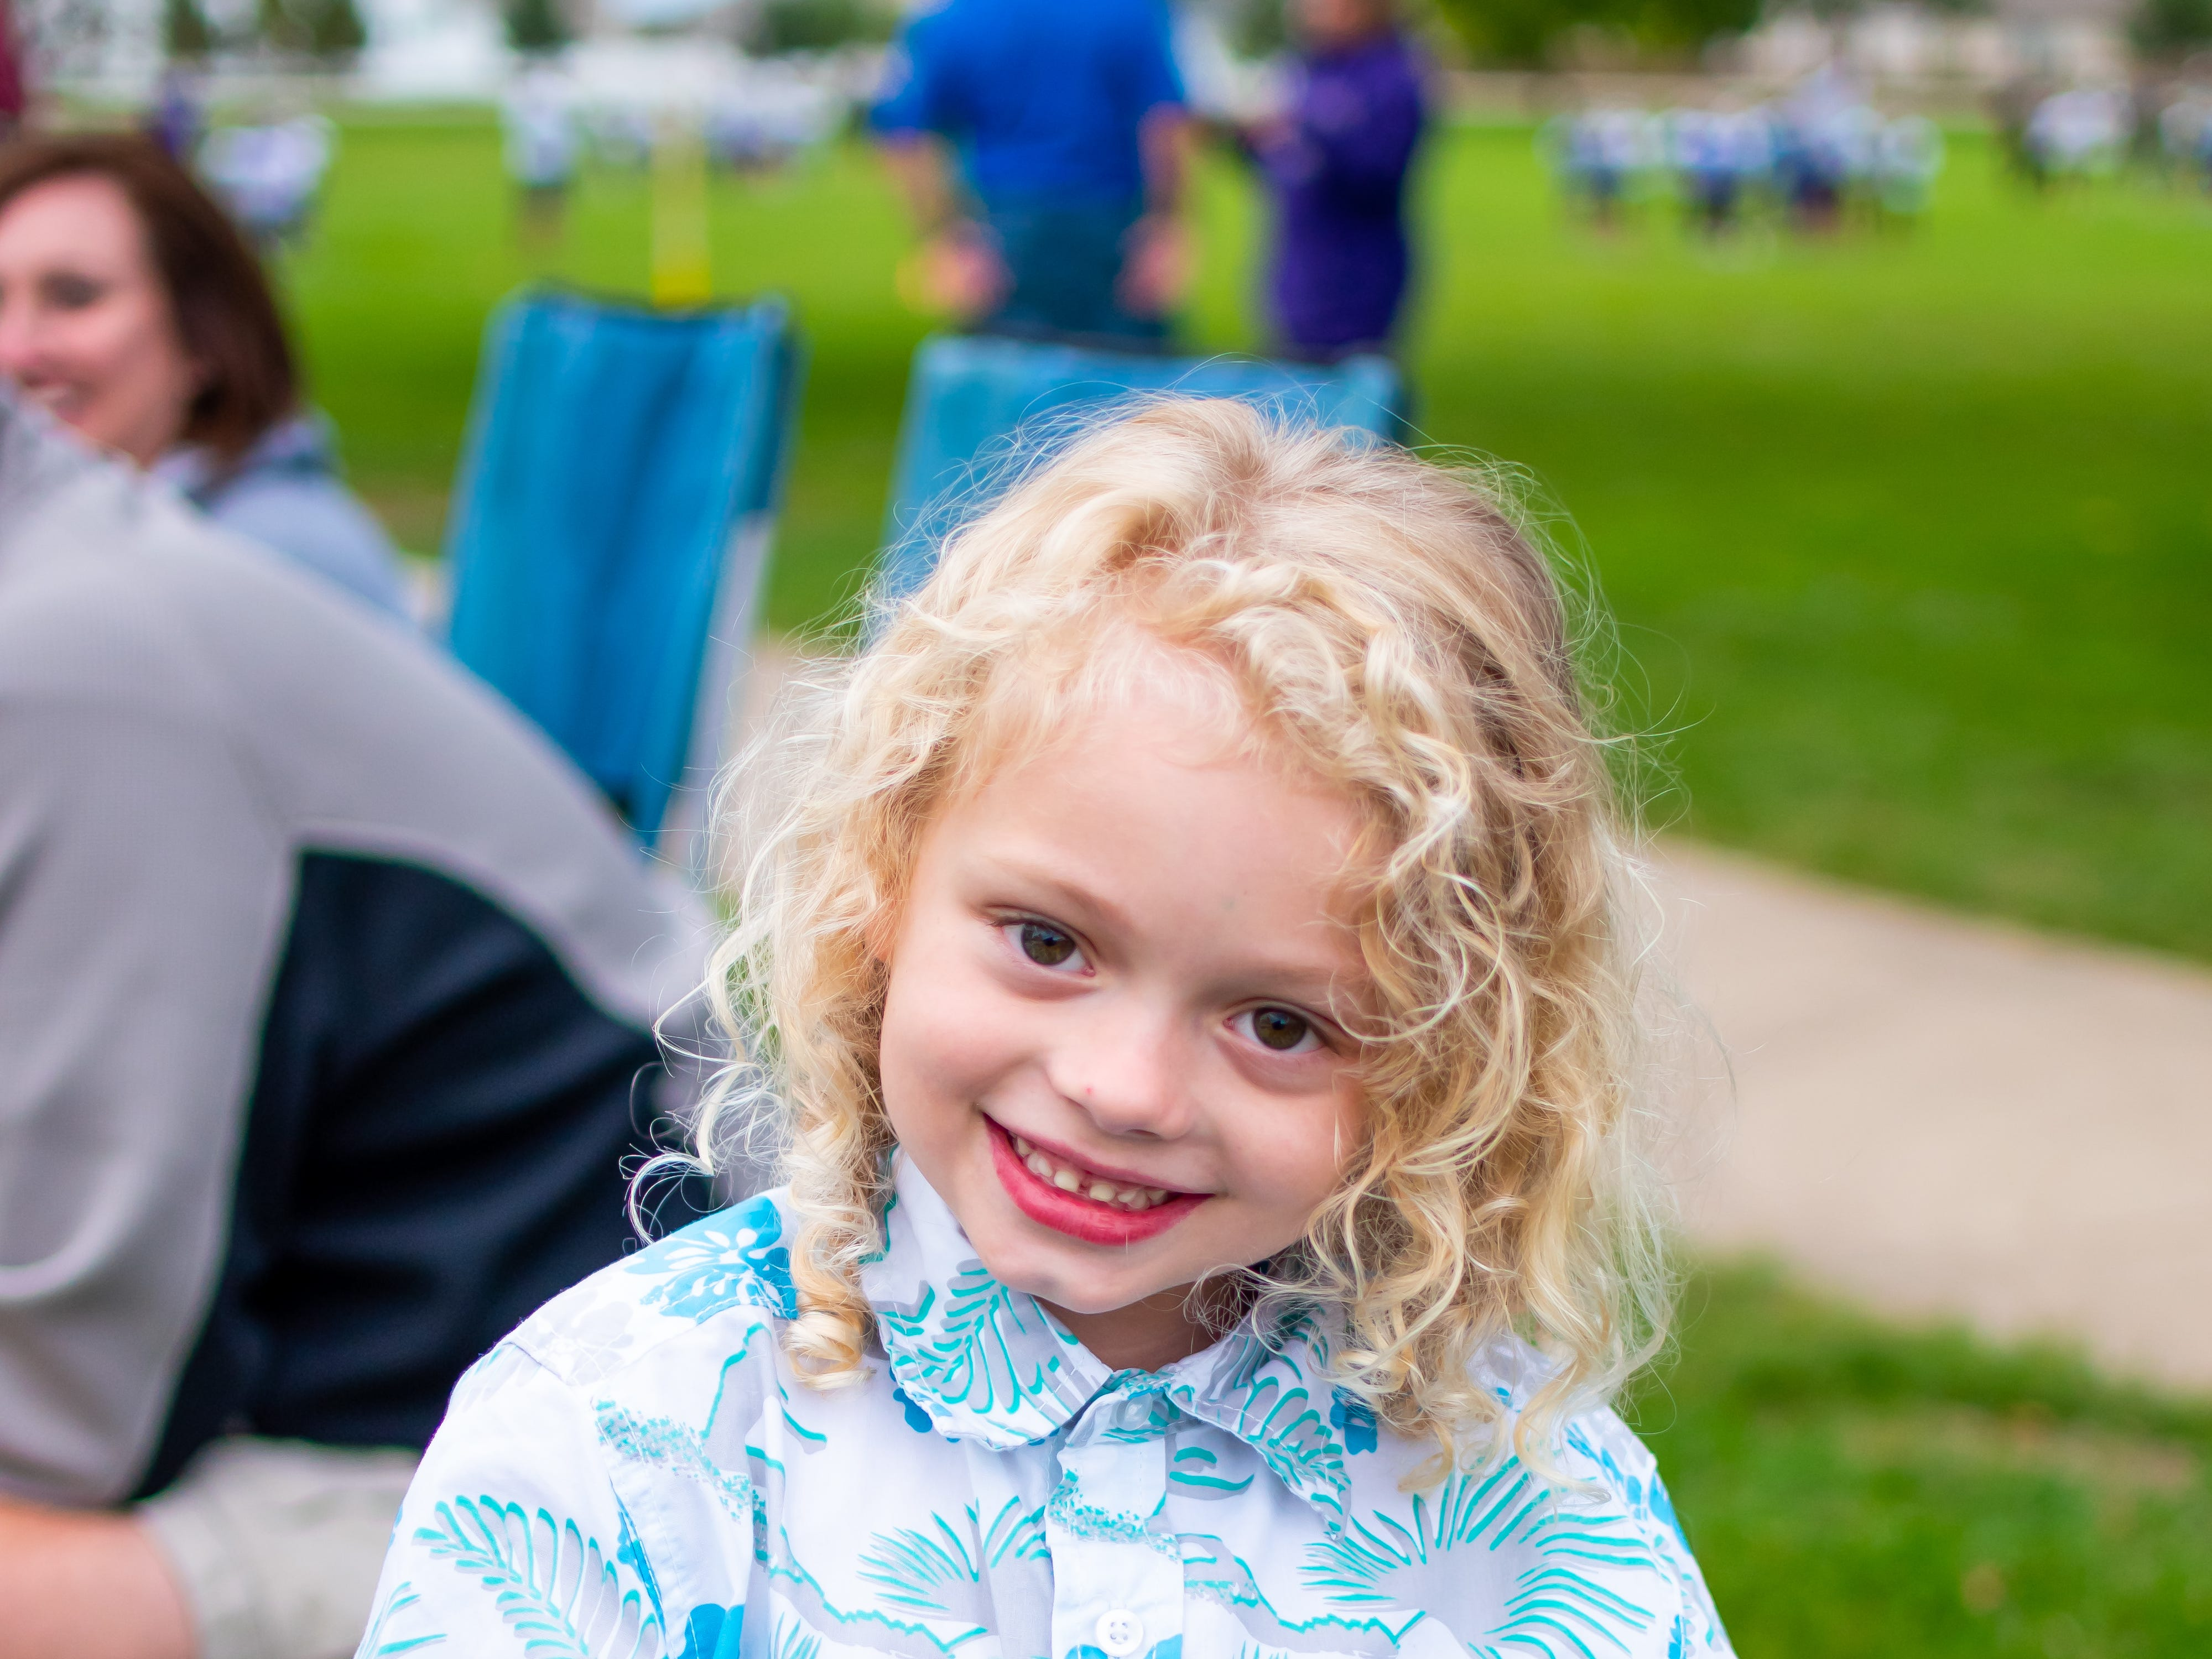 Teagan Guy, 6, of Waukee is all smiles for the Waukee Homecoming Parade on Thursday, September 27, 2018 in Waukee.